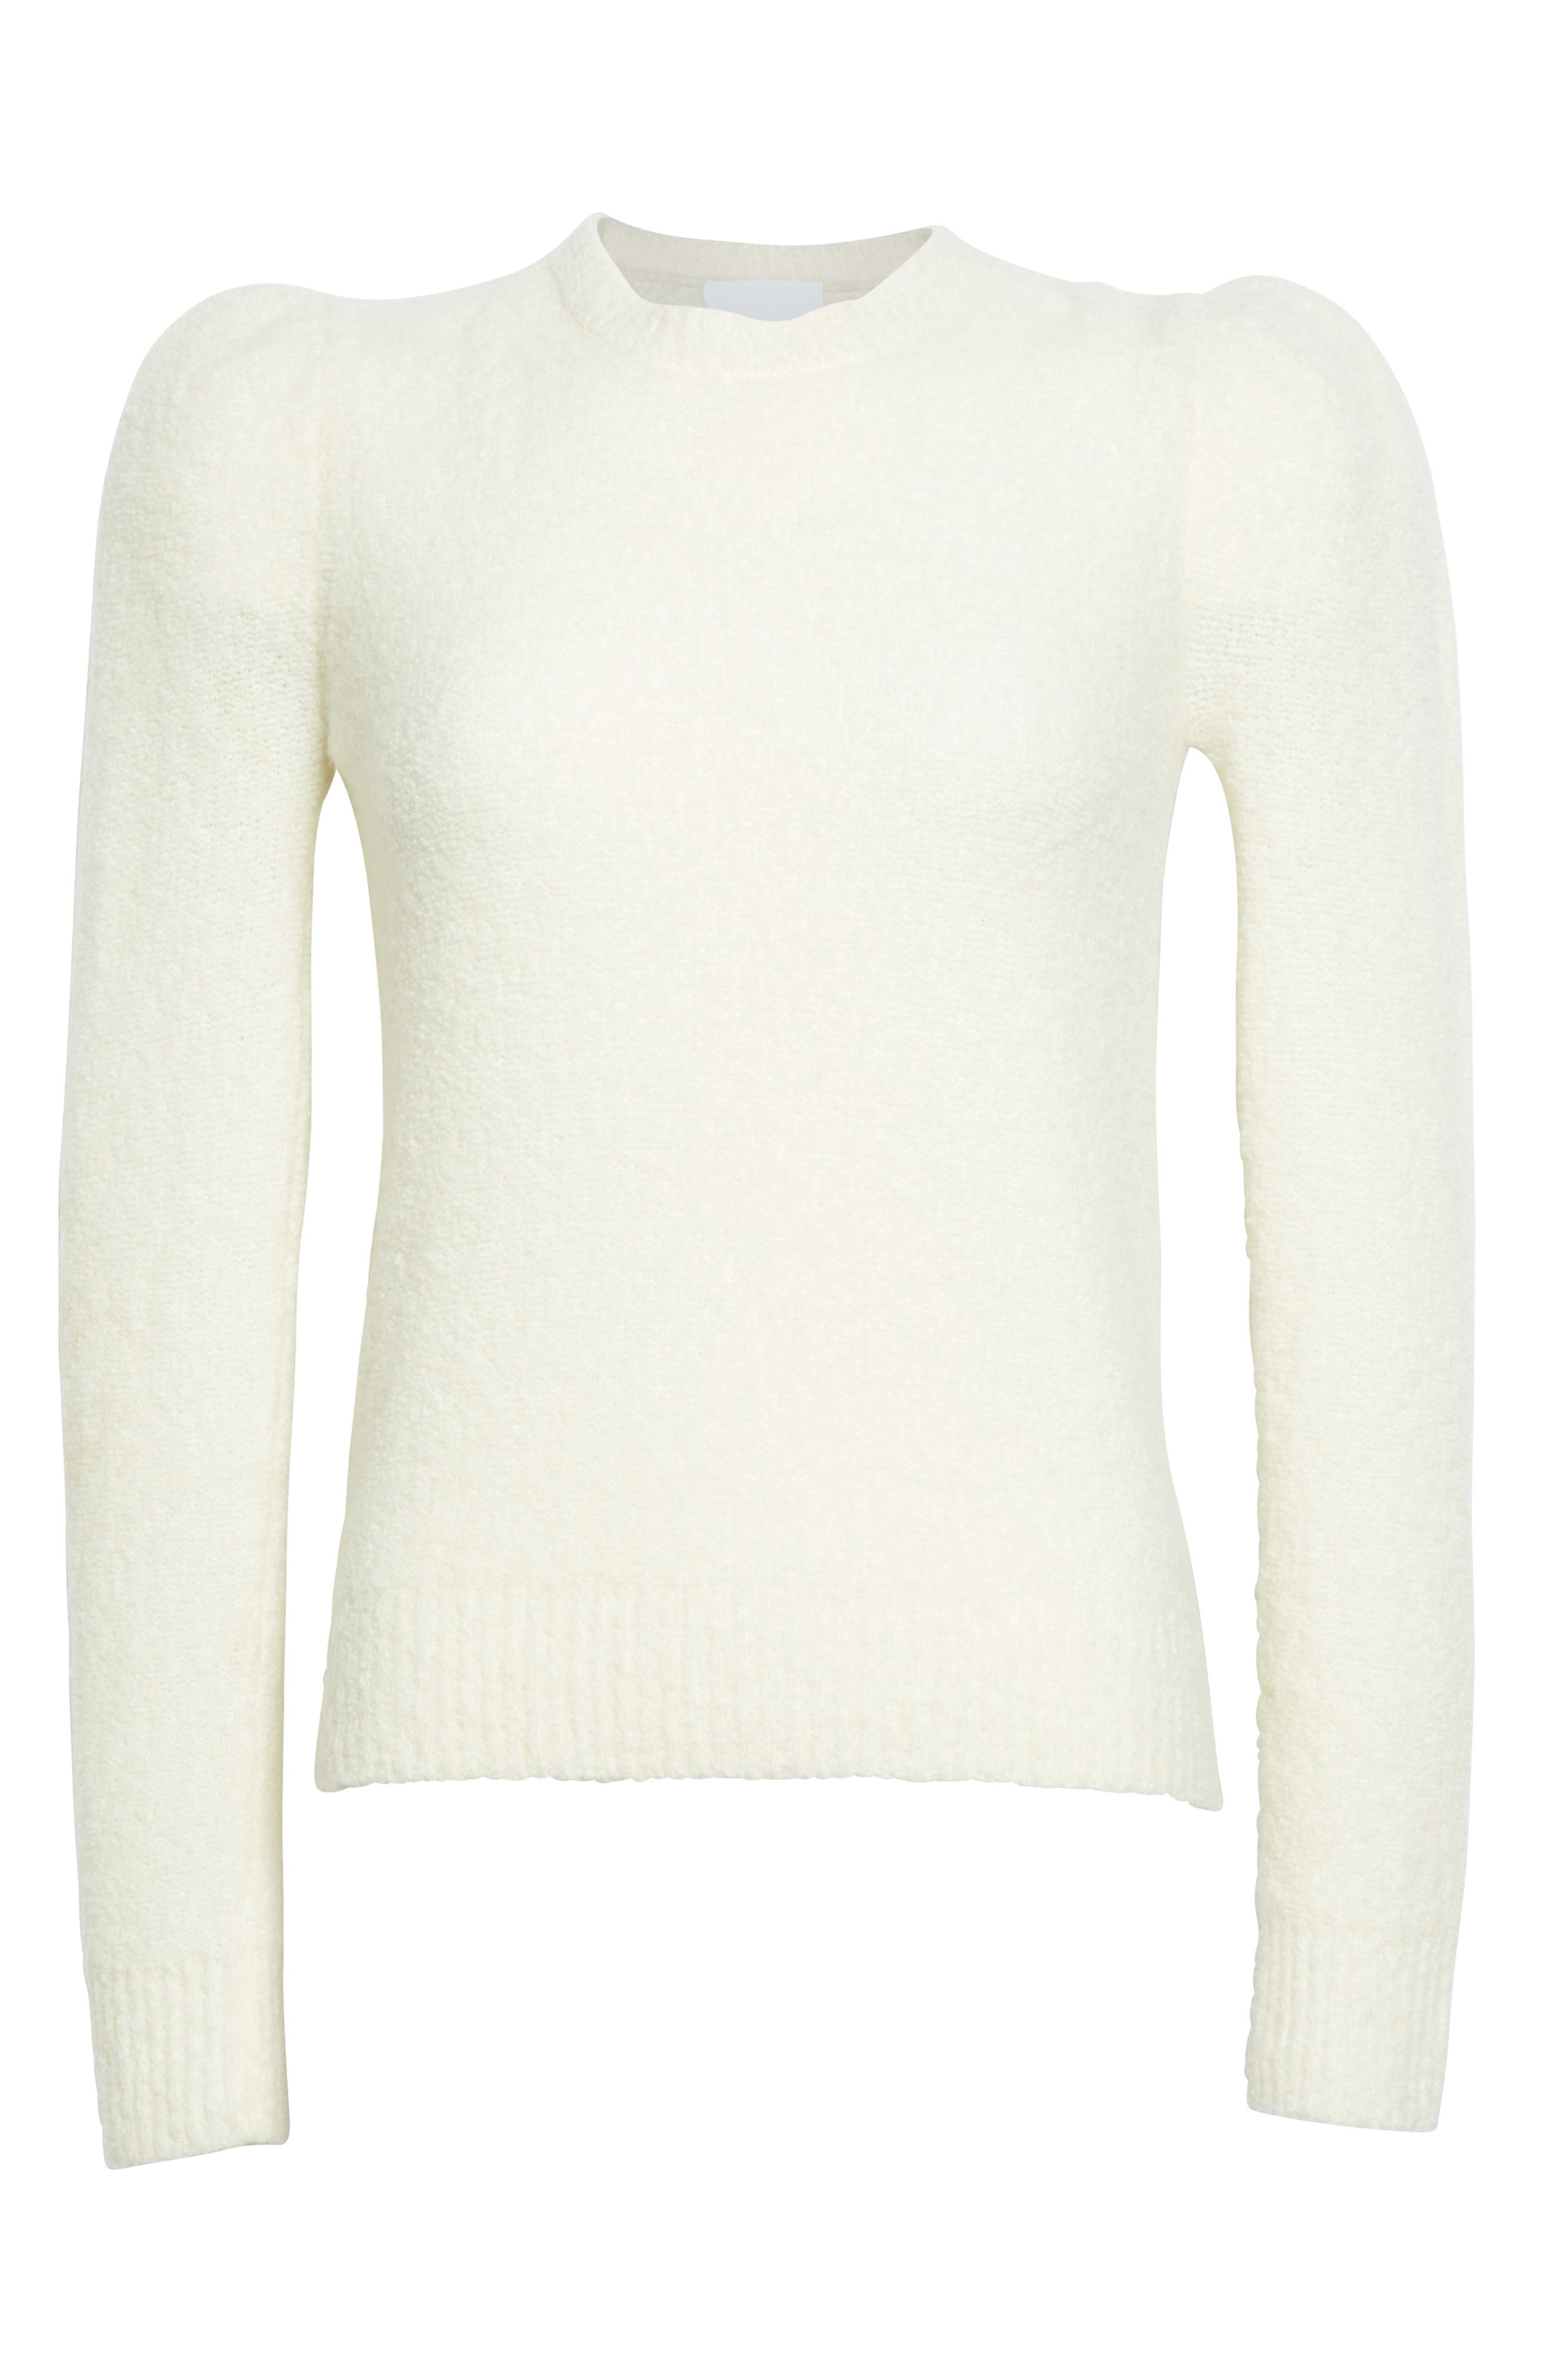 Puff Sleeve Cashmere Blend Sweater,                             Alternate thumbnail 4, color,                             Ivory